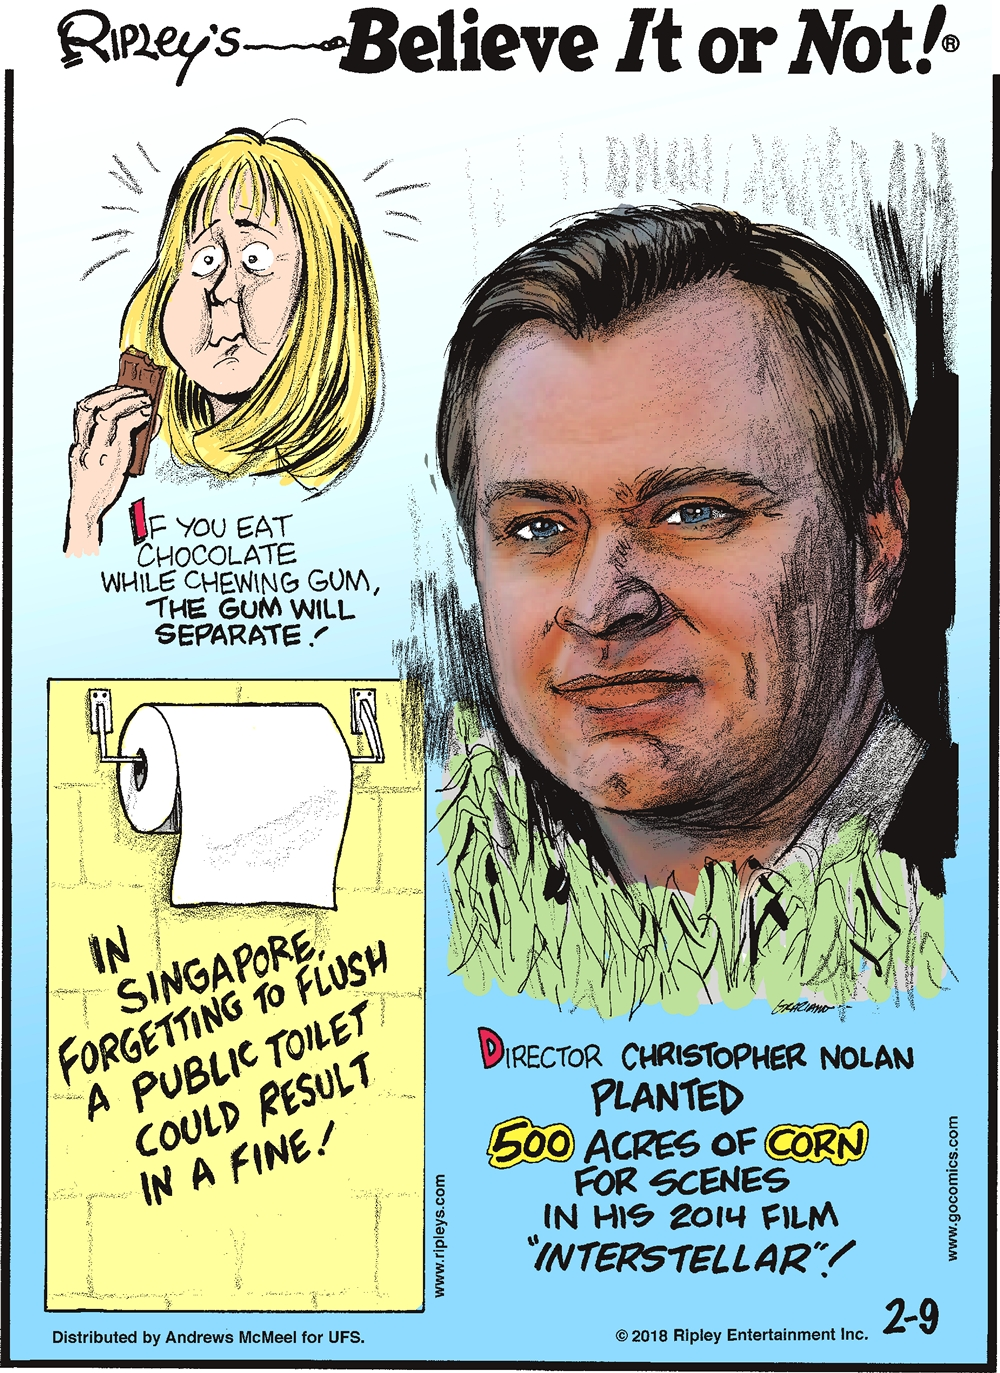 """If you eat chocolate while chewing gum, the gum will separate!-------------------- In Singapore, forgetting to flush a public toilet could result in a fine!-------------------- Director Christopher Nolan planted 500 acres of corn for scenes in his 2014 film """"Interstellar""""!"""